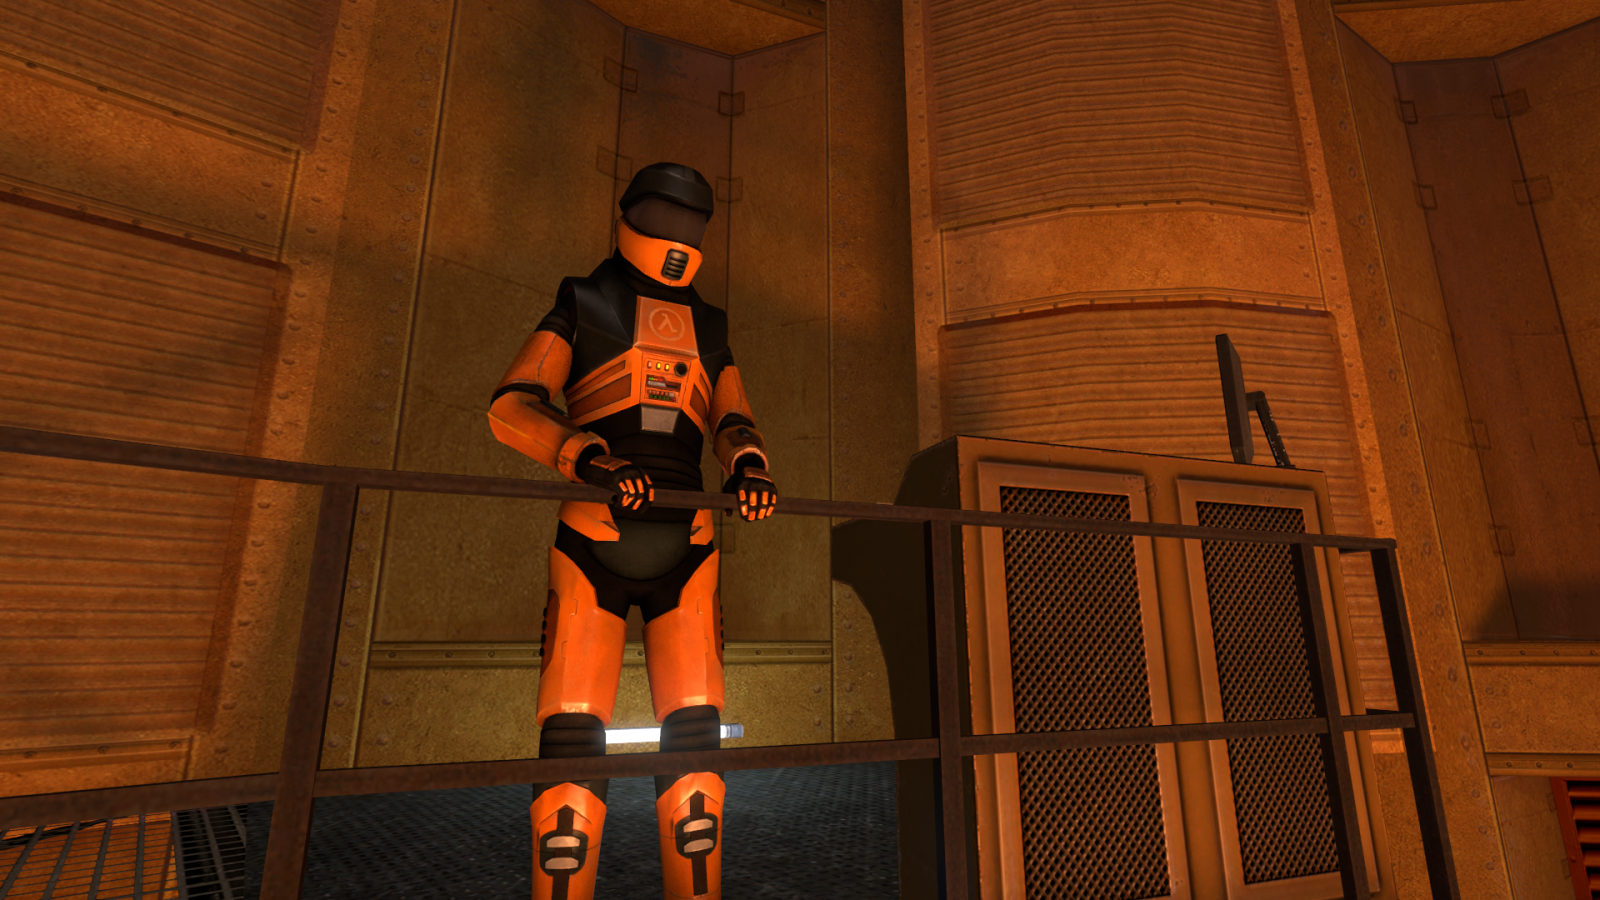 Half_Life_Black_Mesa_Gordon_Freeman-1552771.png